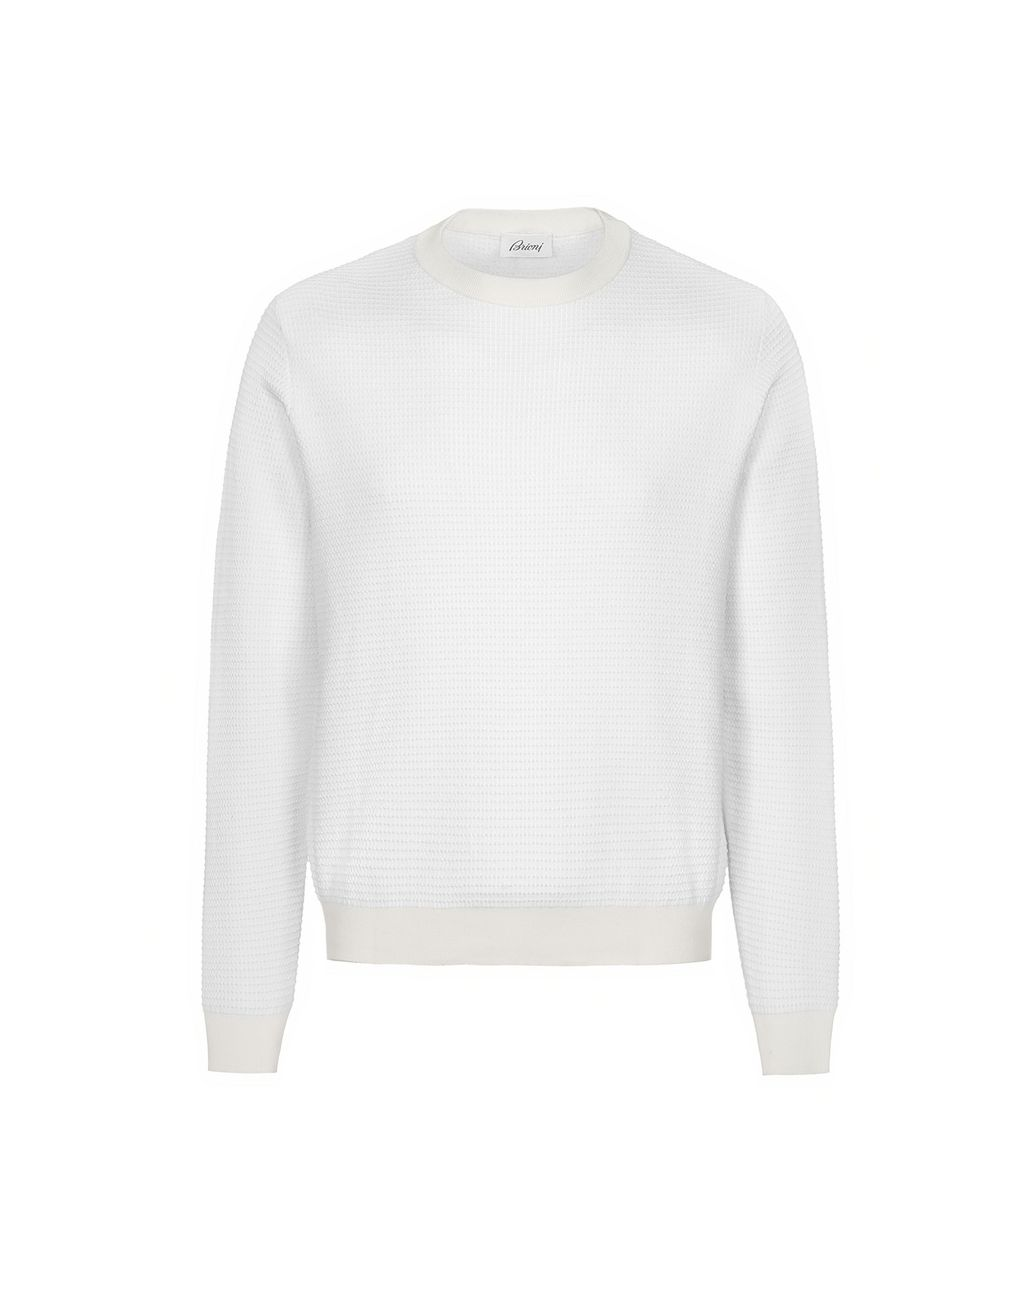 BRIONI White Crew Neck Sweater Knitwear Man f